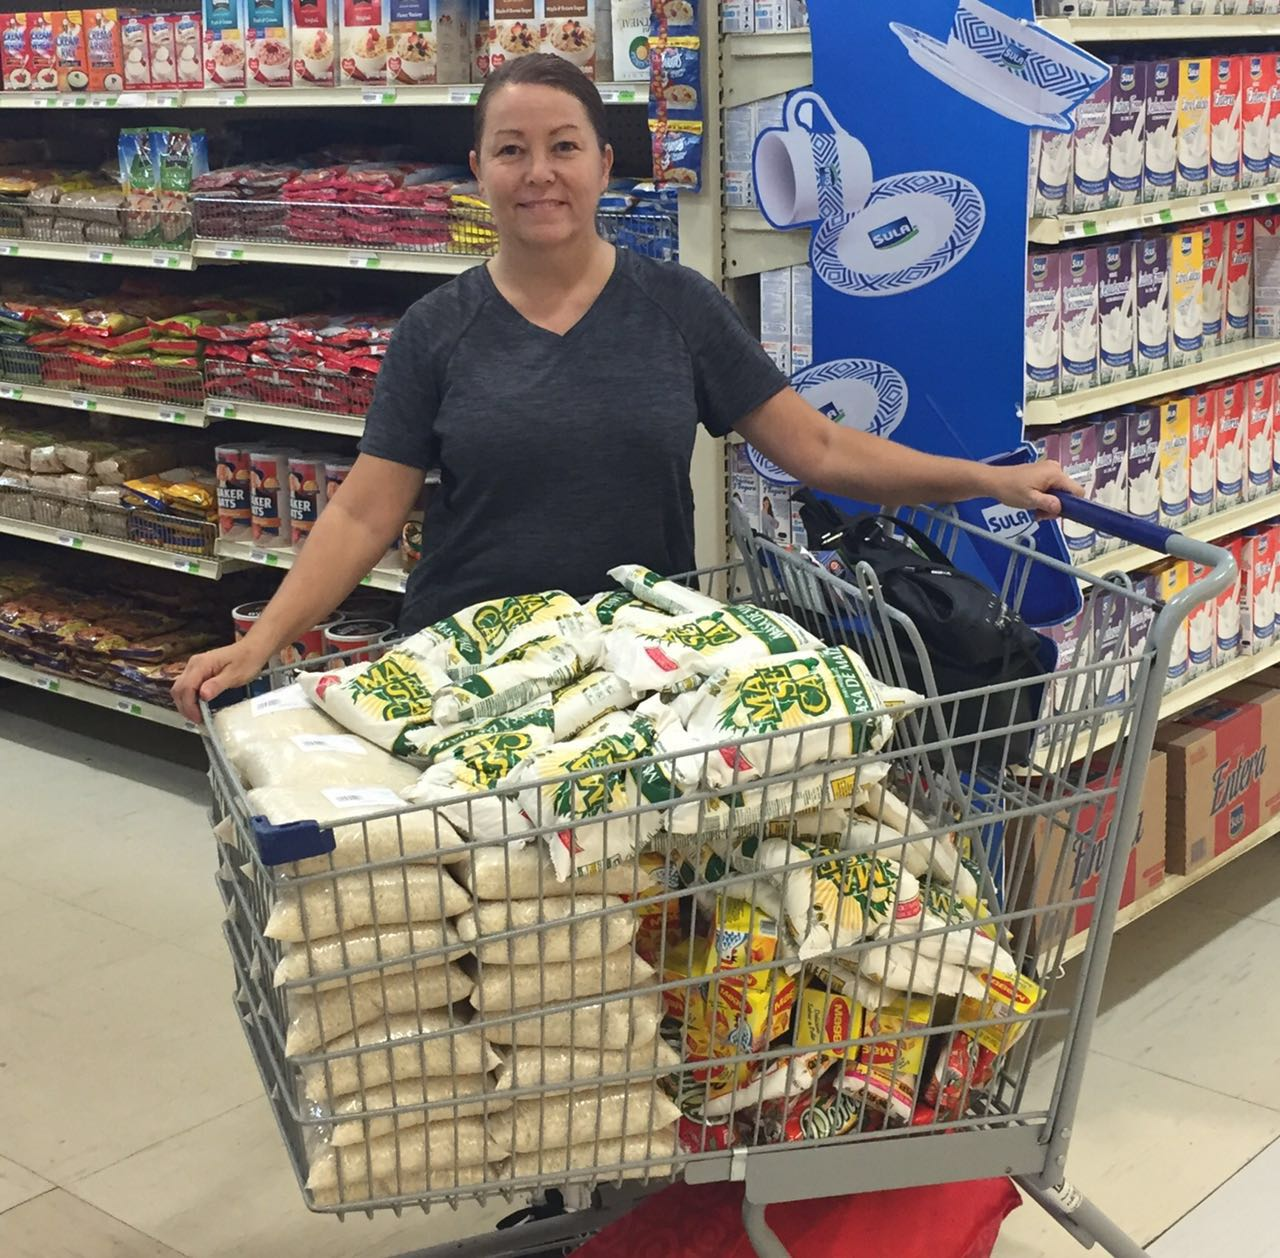 Our founder and missionary, Robyn, buying groceries to fill the back packs